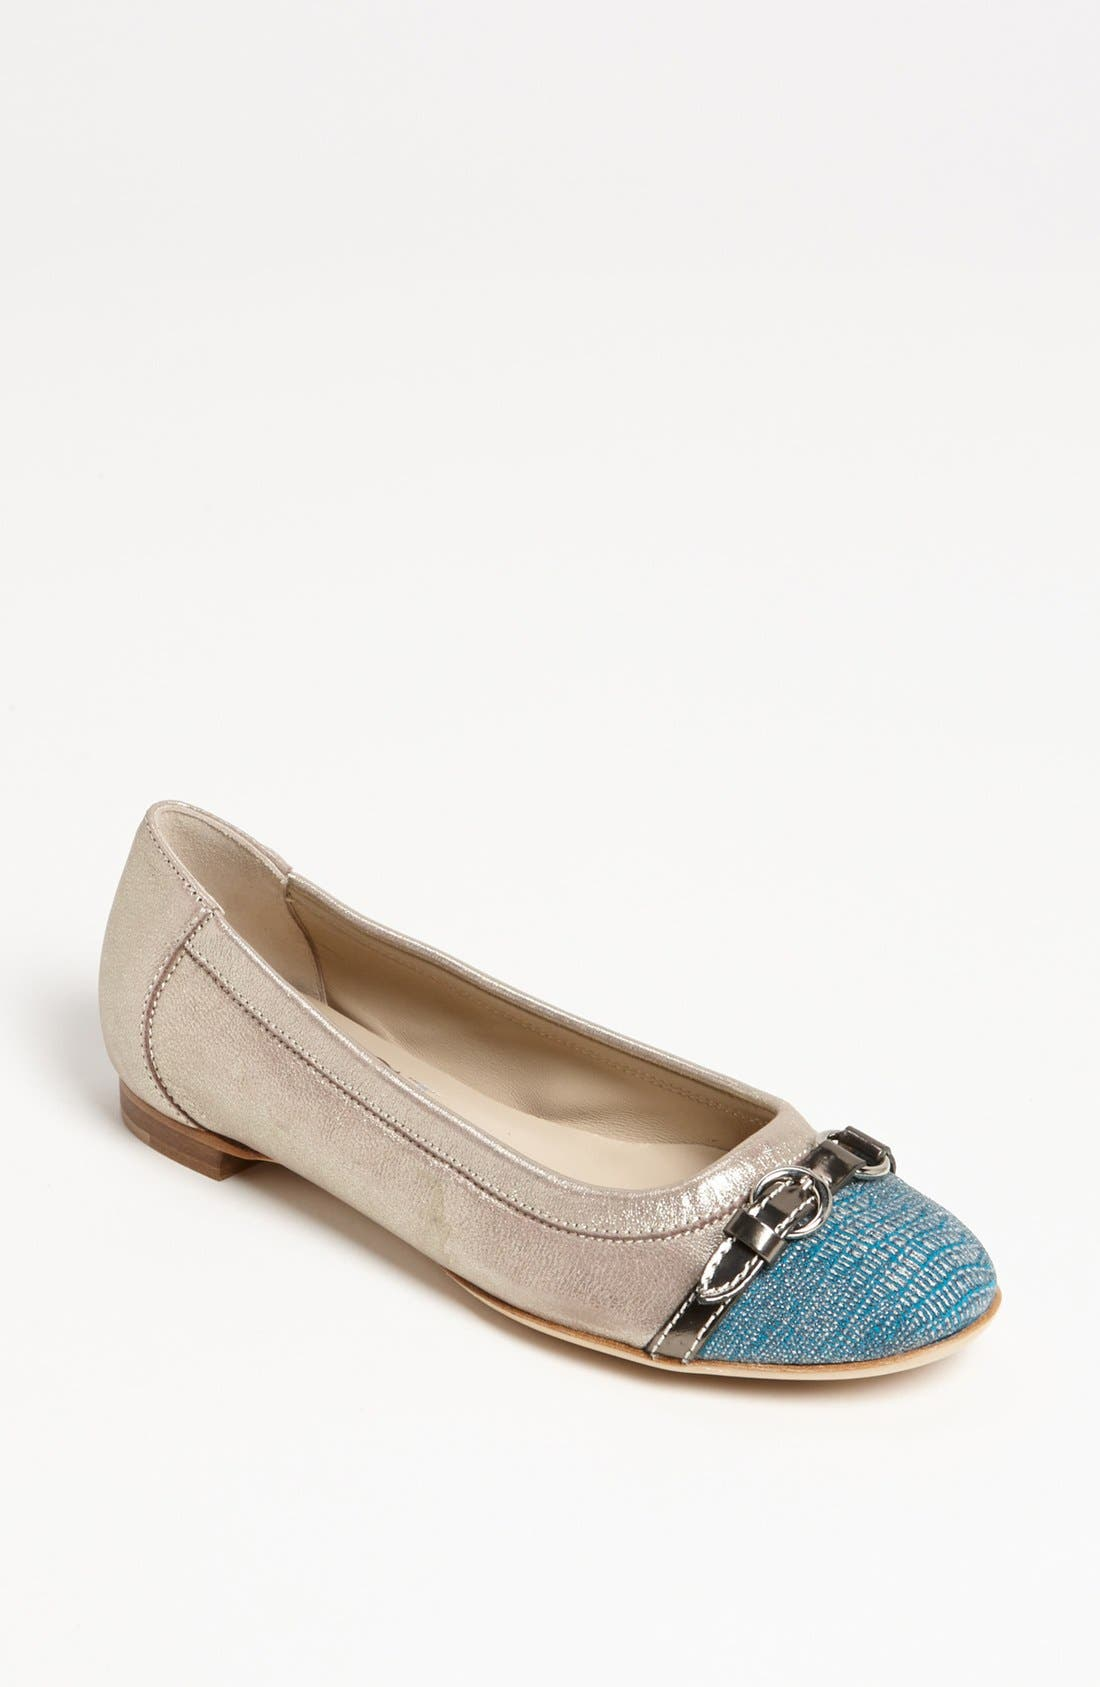 Alternate Image 1 Selected - Attilio Giusti Leombruni 'Diamond' Toe Cap Ballet Flat